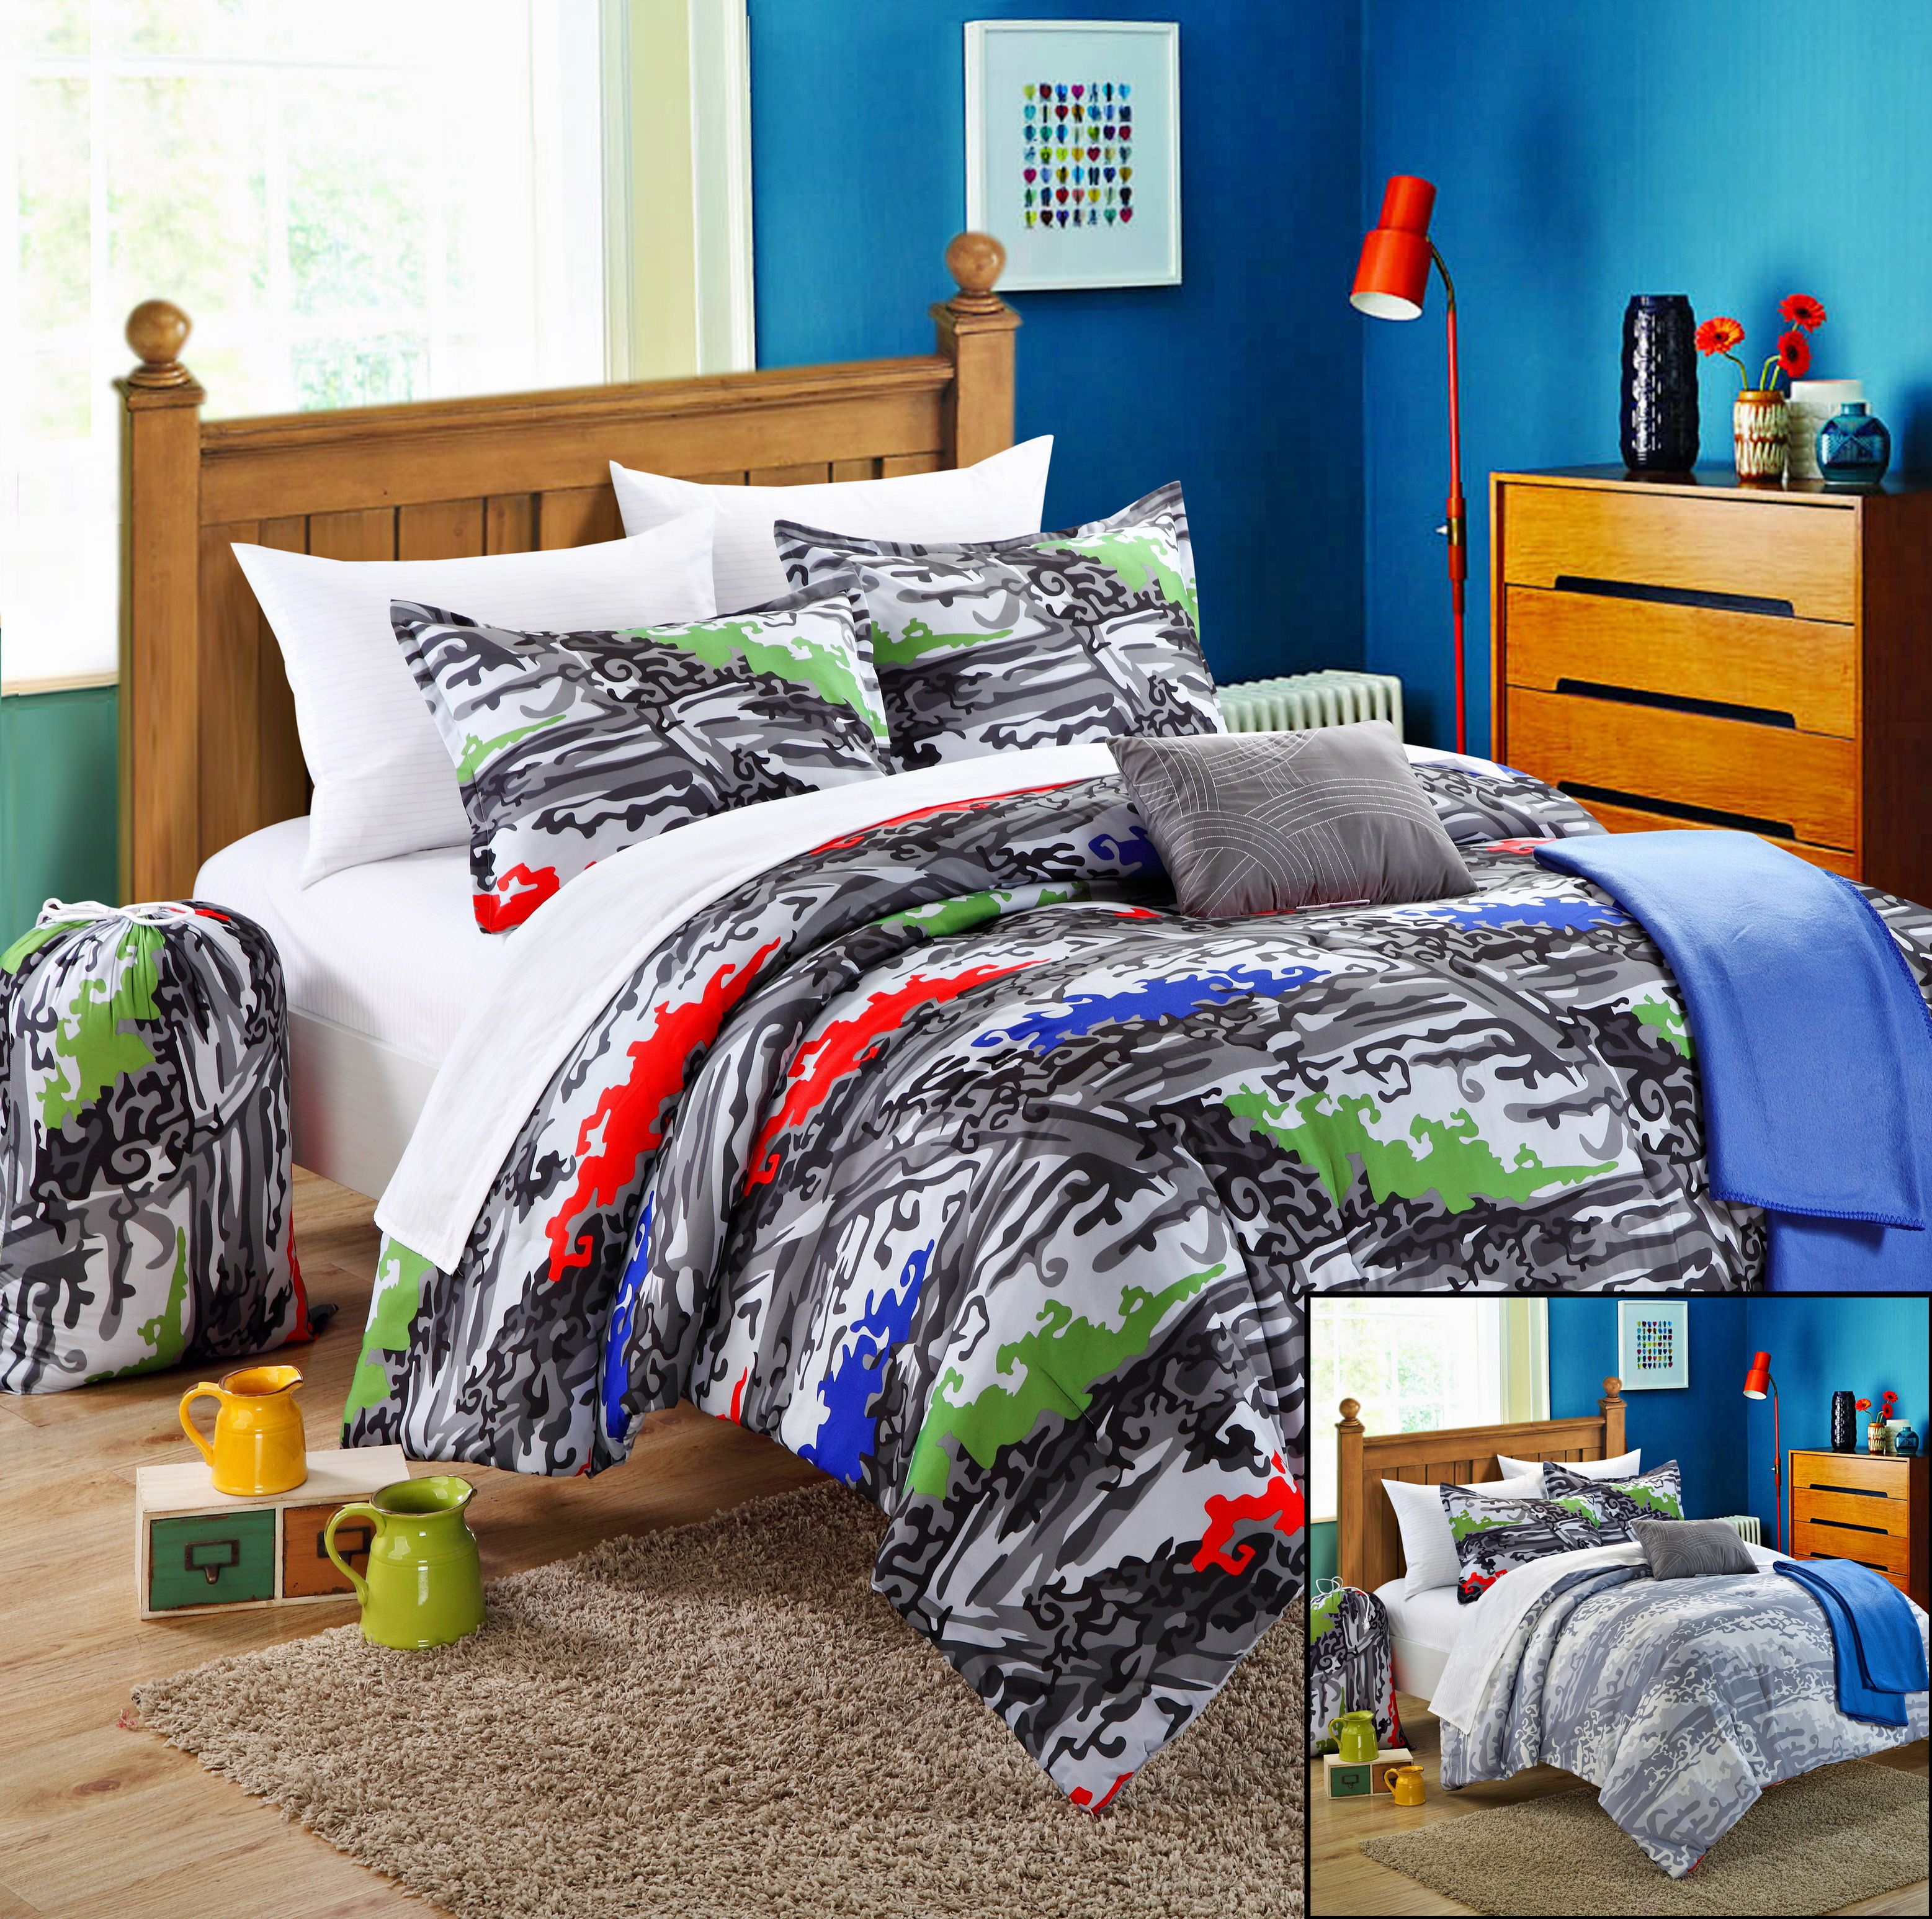 bag sets comforter decor bedding ebay comforters pics dorm potter to your on bautiful as home size bedroom plus inspire elmo harry full in cozy motto xlbautiful sale bed twin set school a